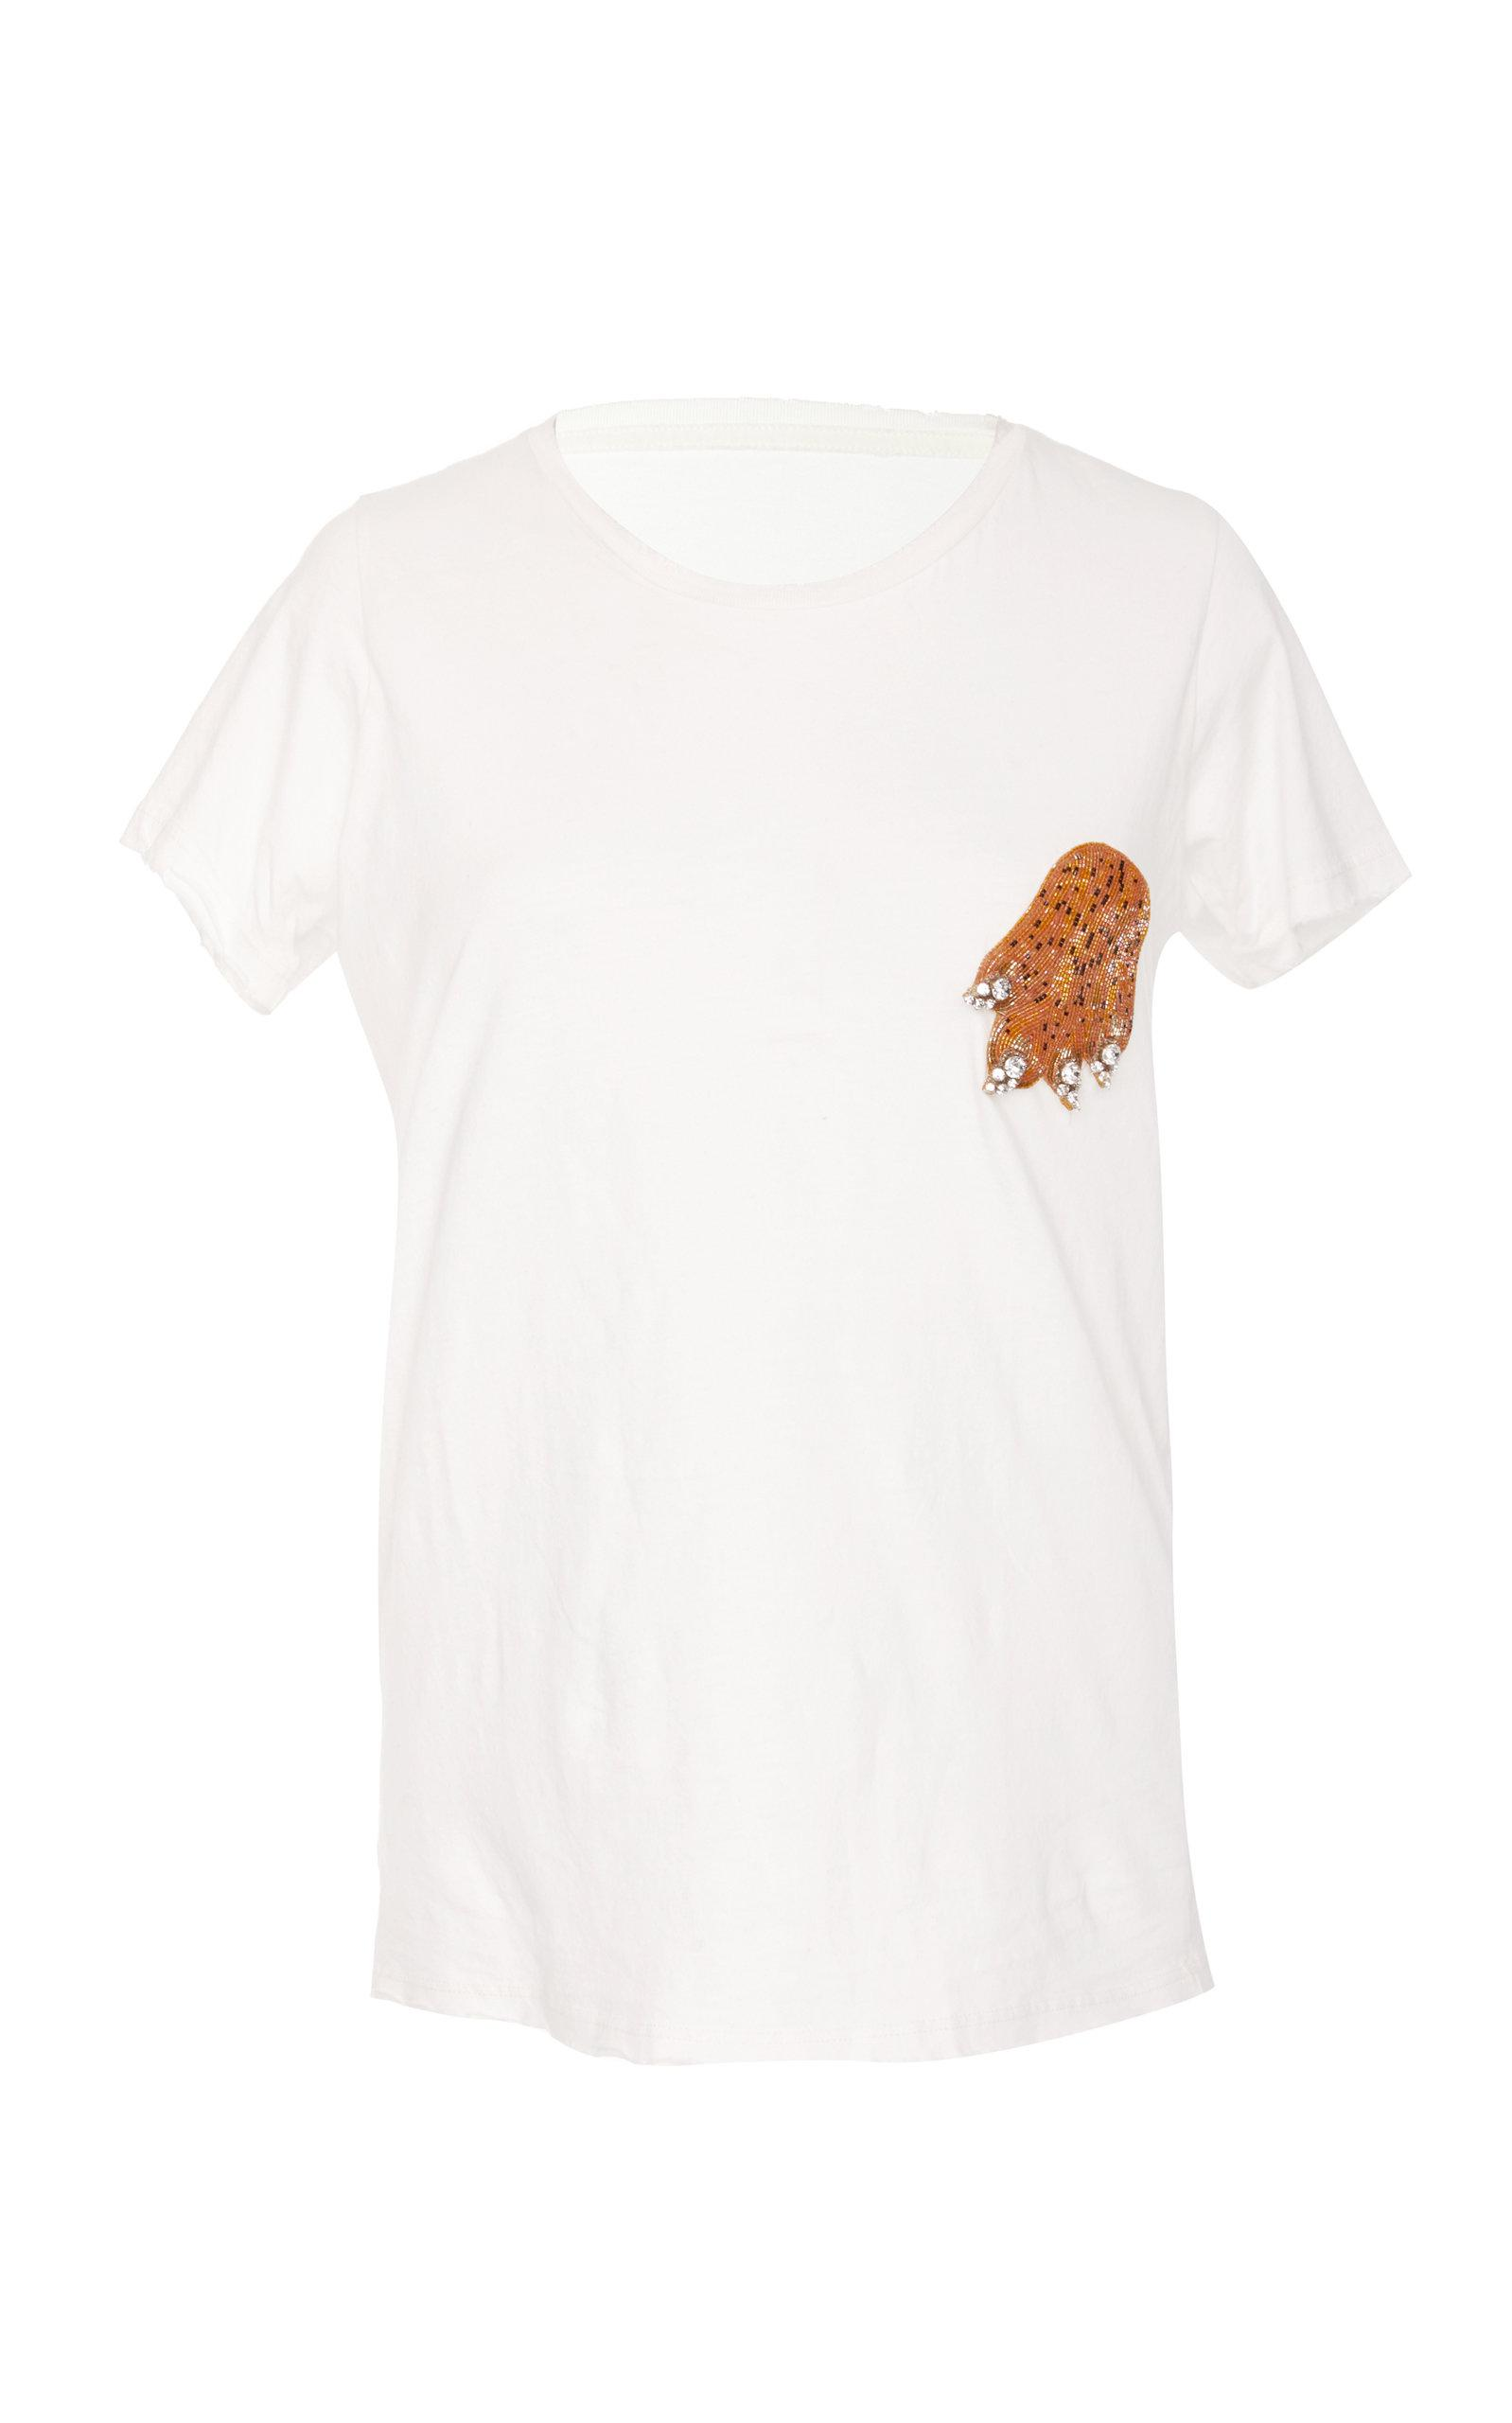 Rebecca De Ravenel Love All T-shirt In White